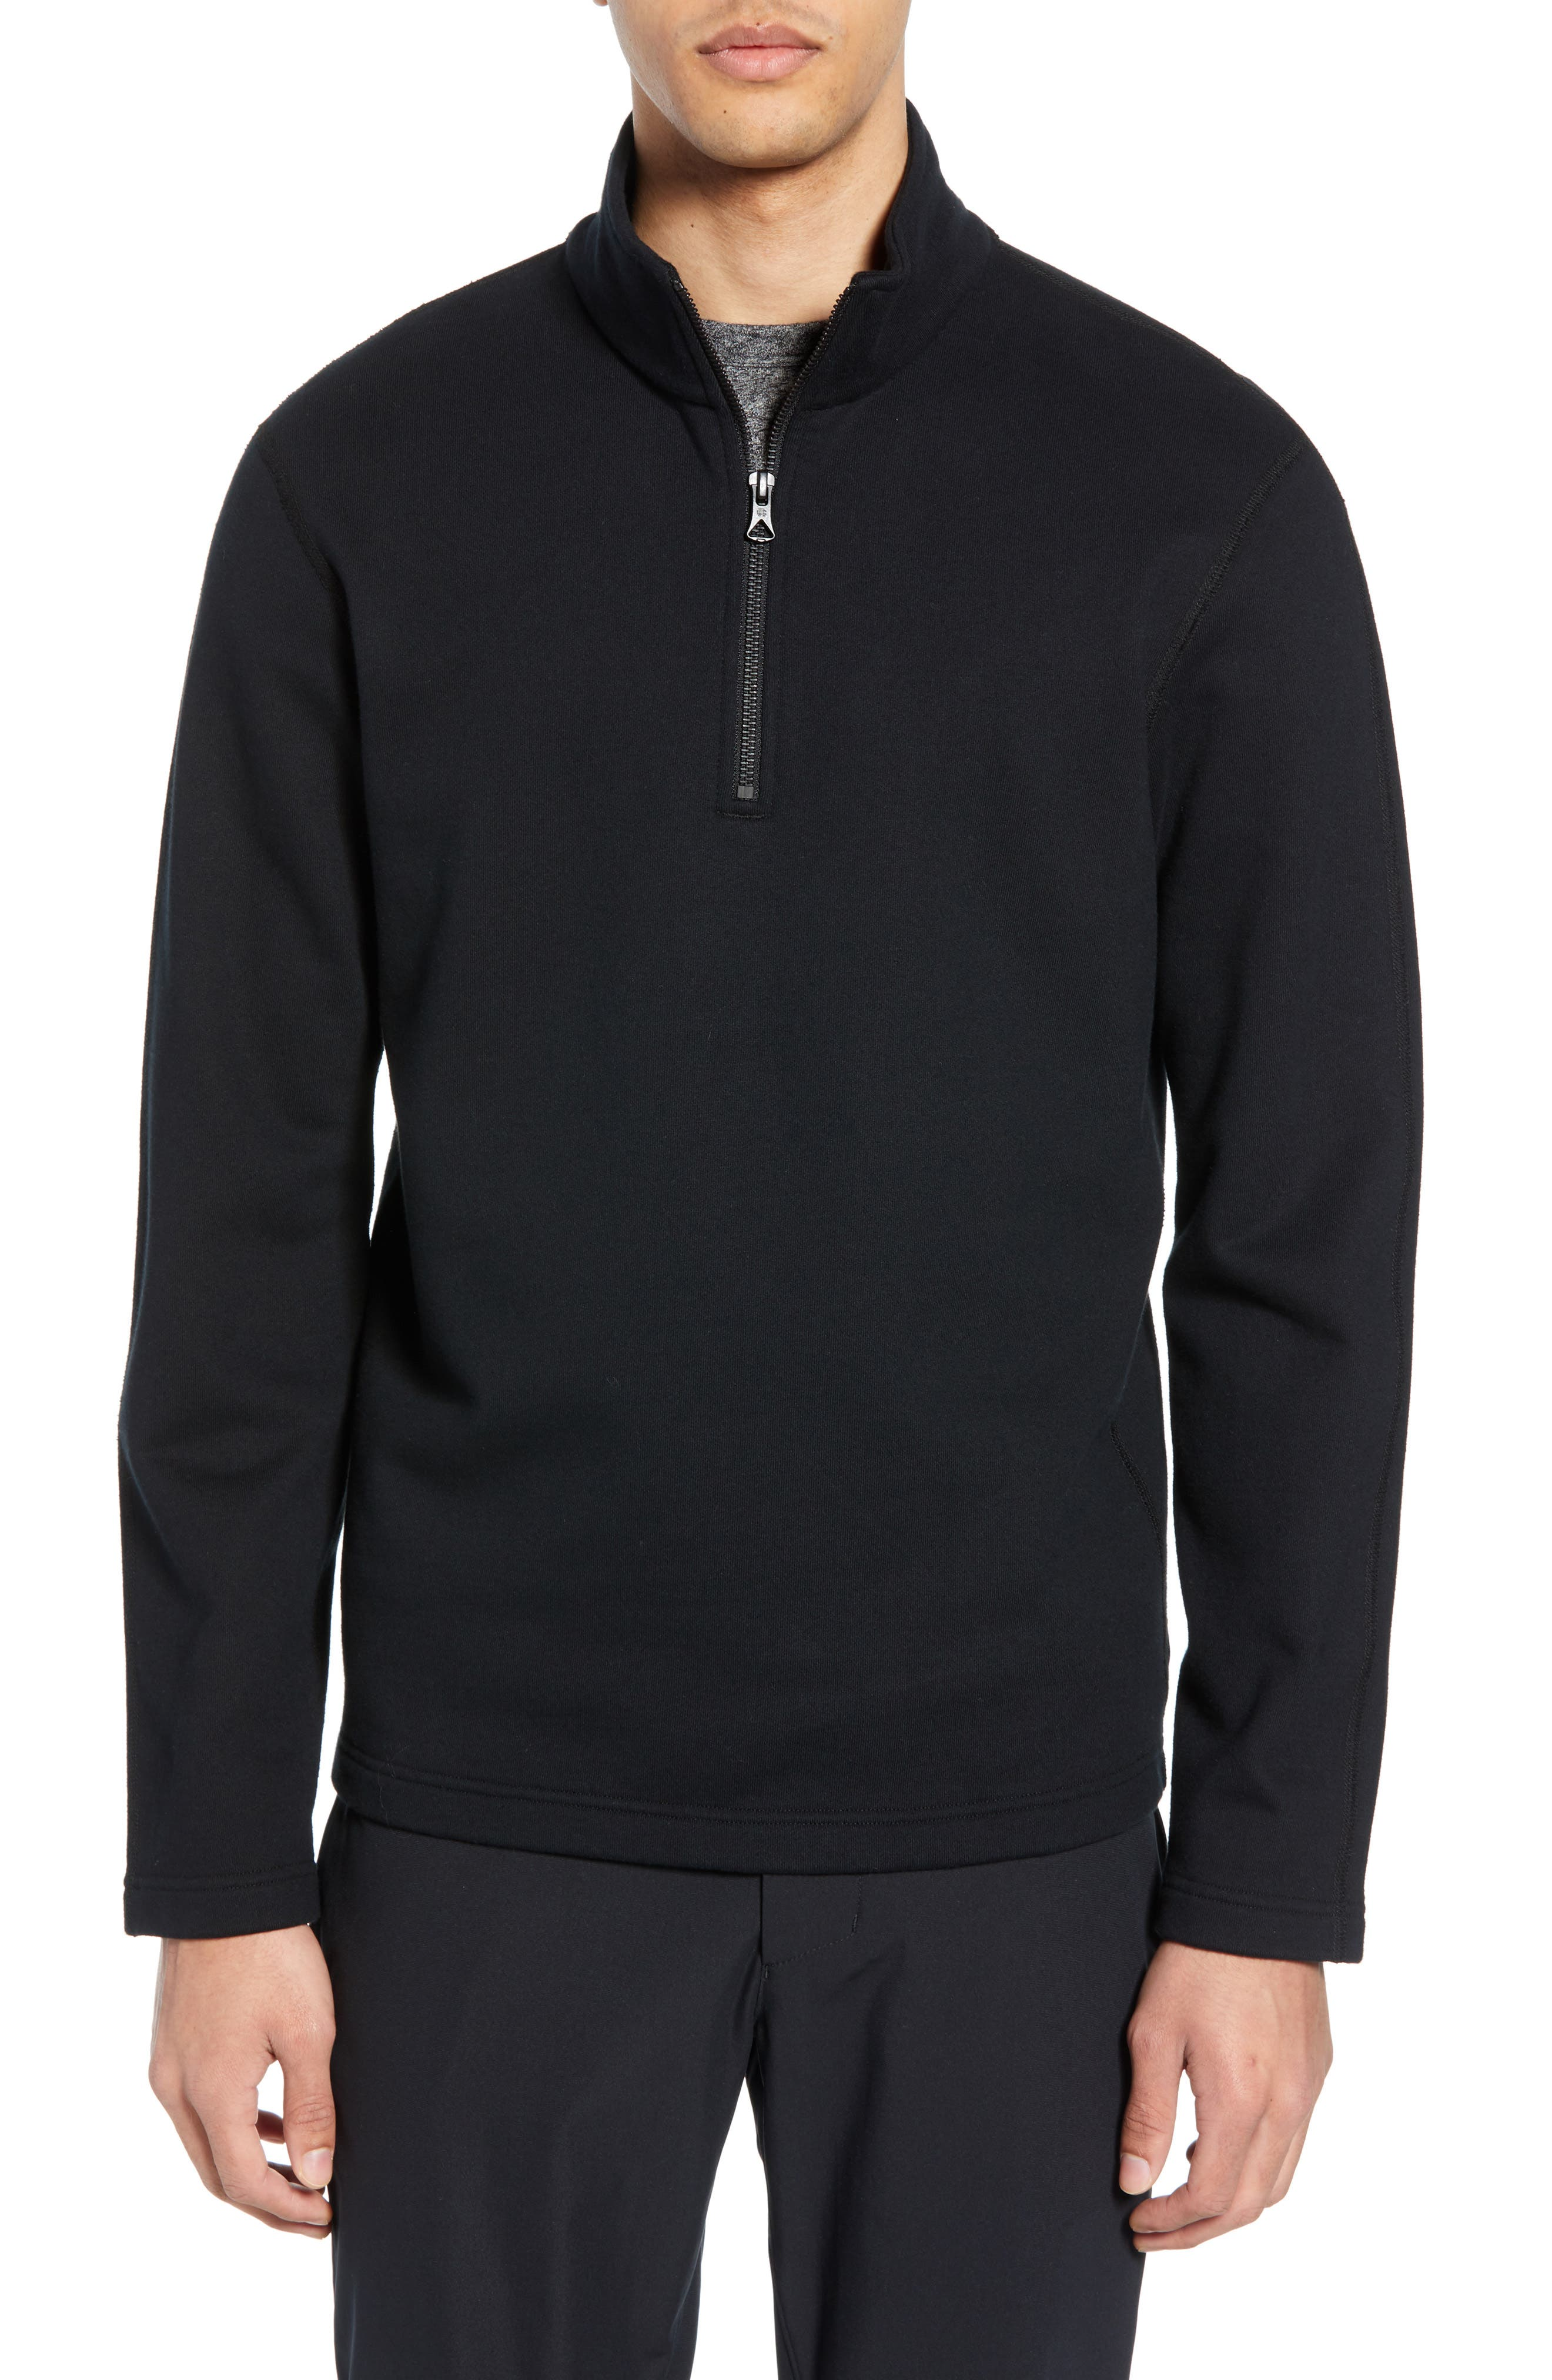 REIGNING CHAMP, Half Zip Pullover, Main thumbnail 1, color, 001